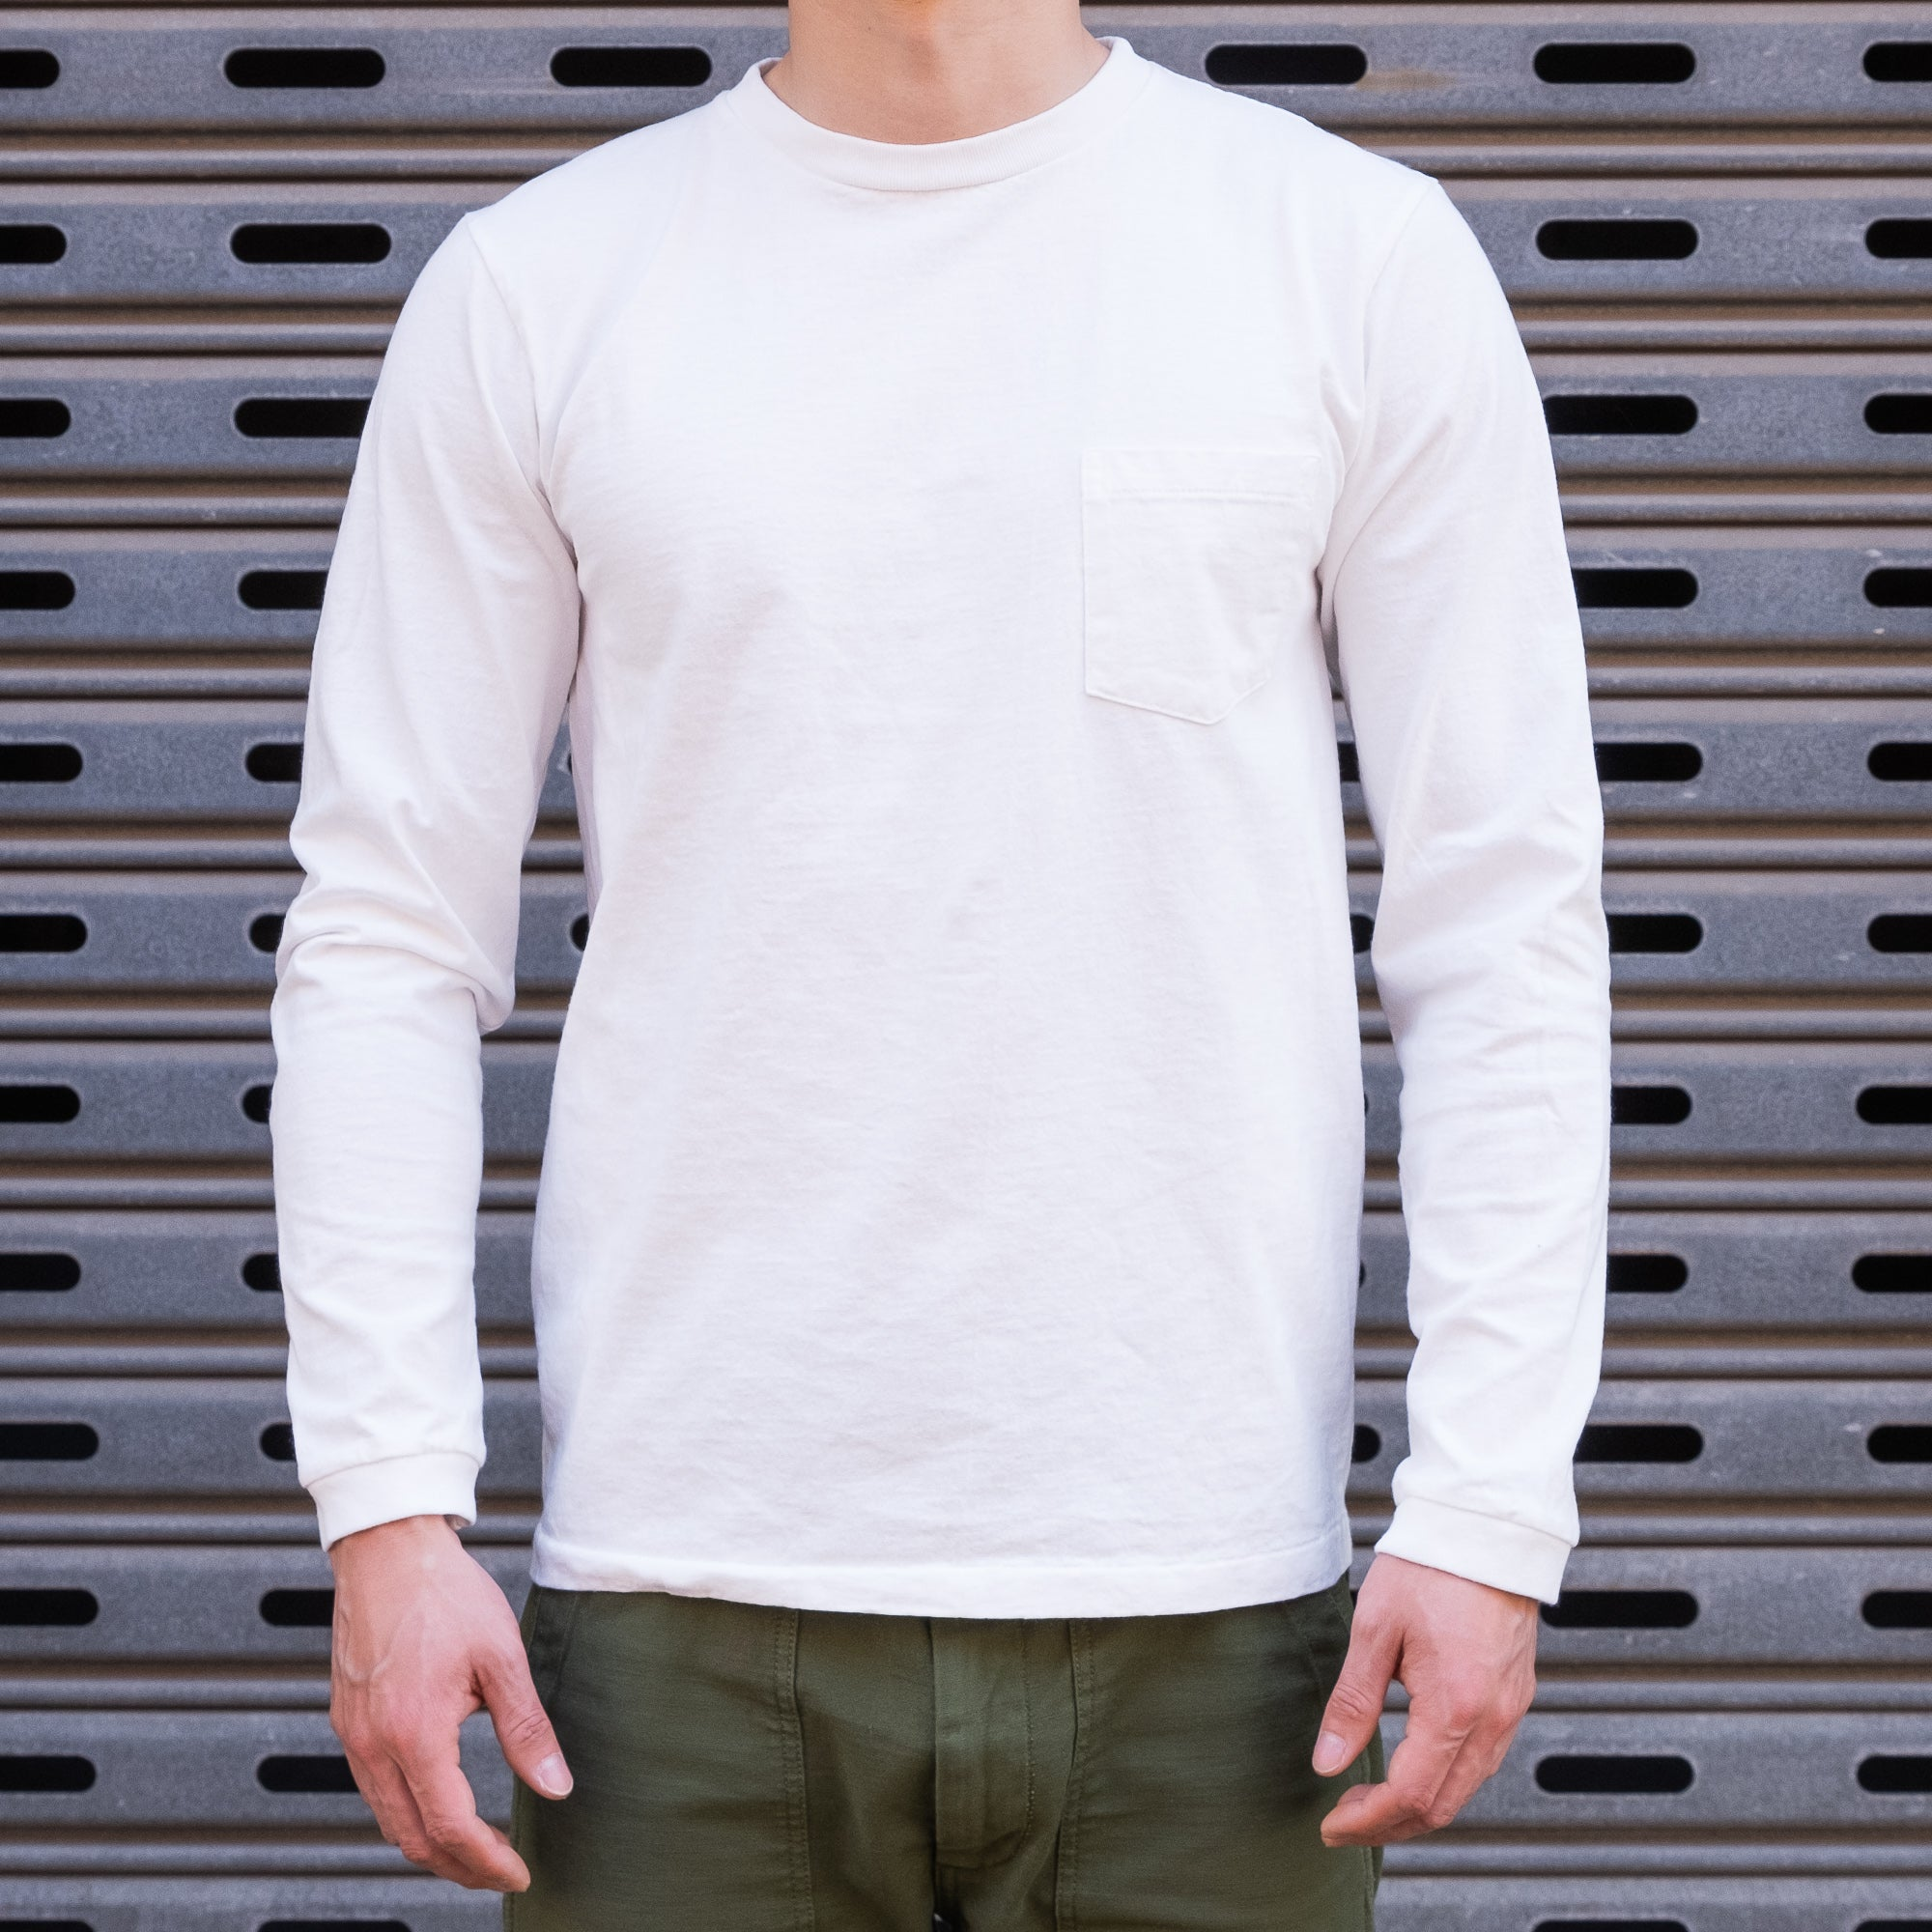 Velva Sheen - Tubuler L/S Tee in White